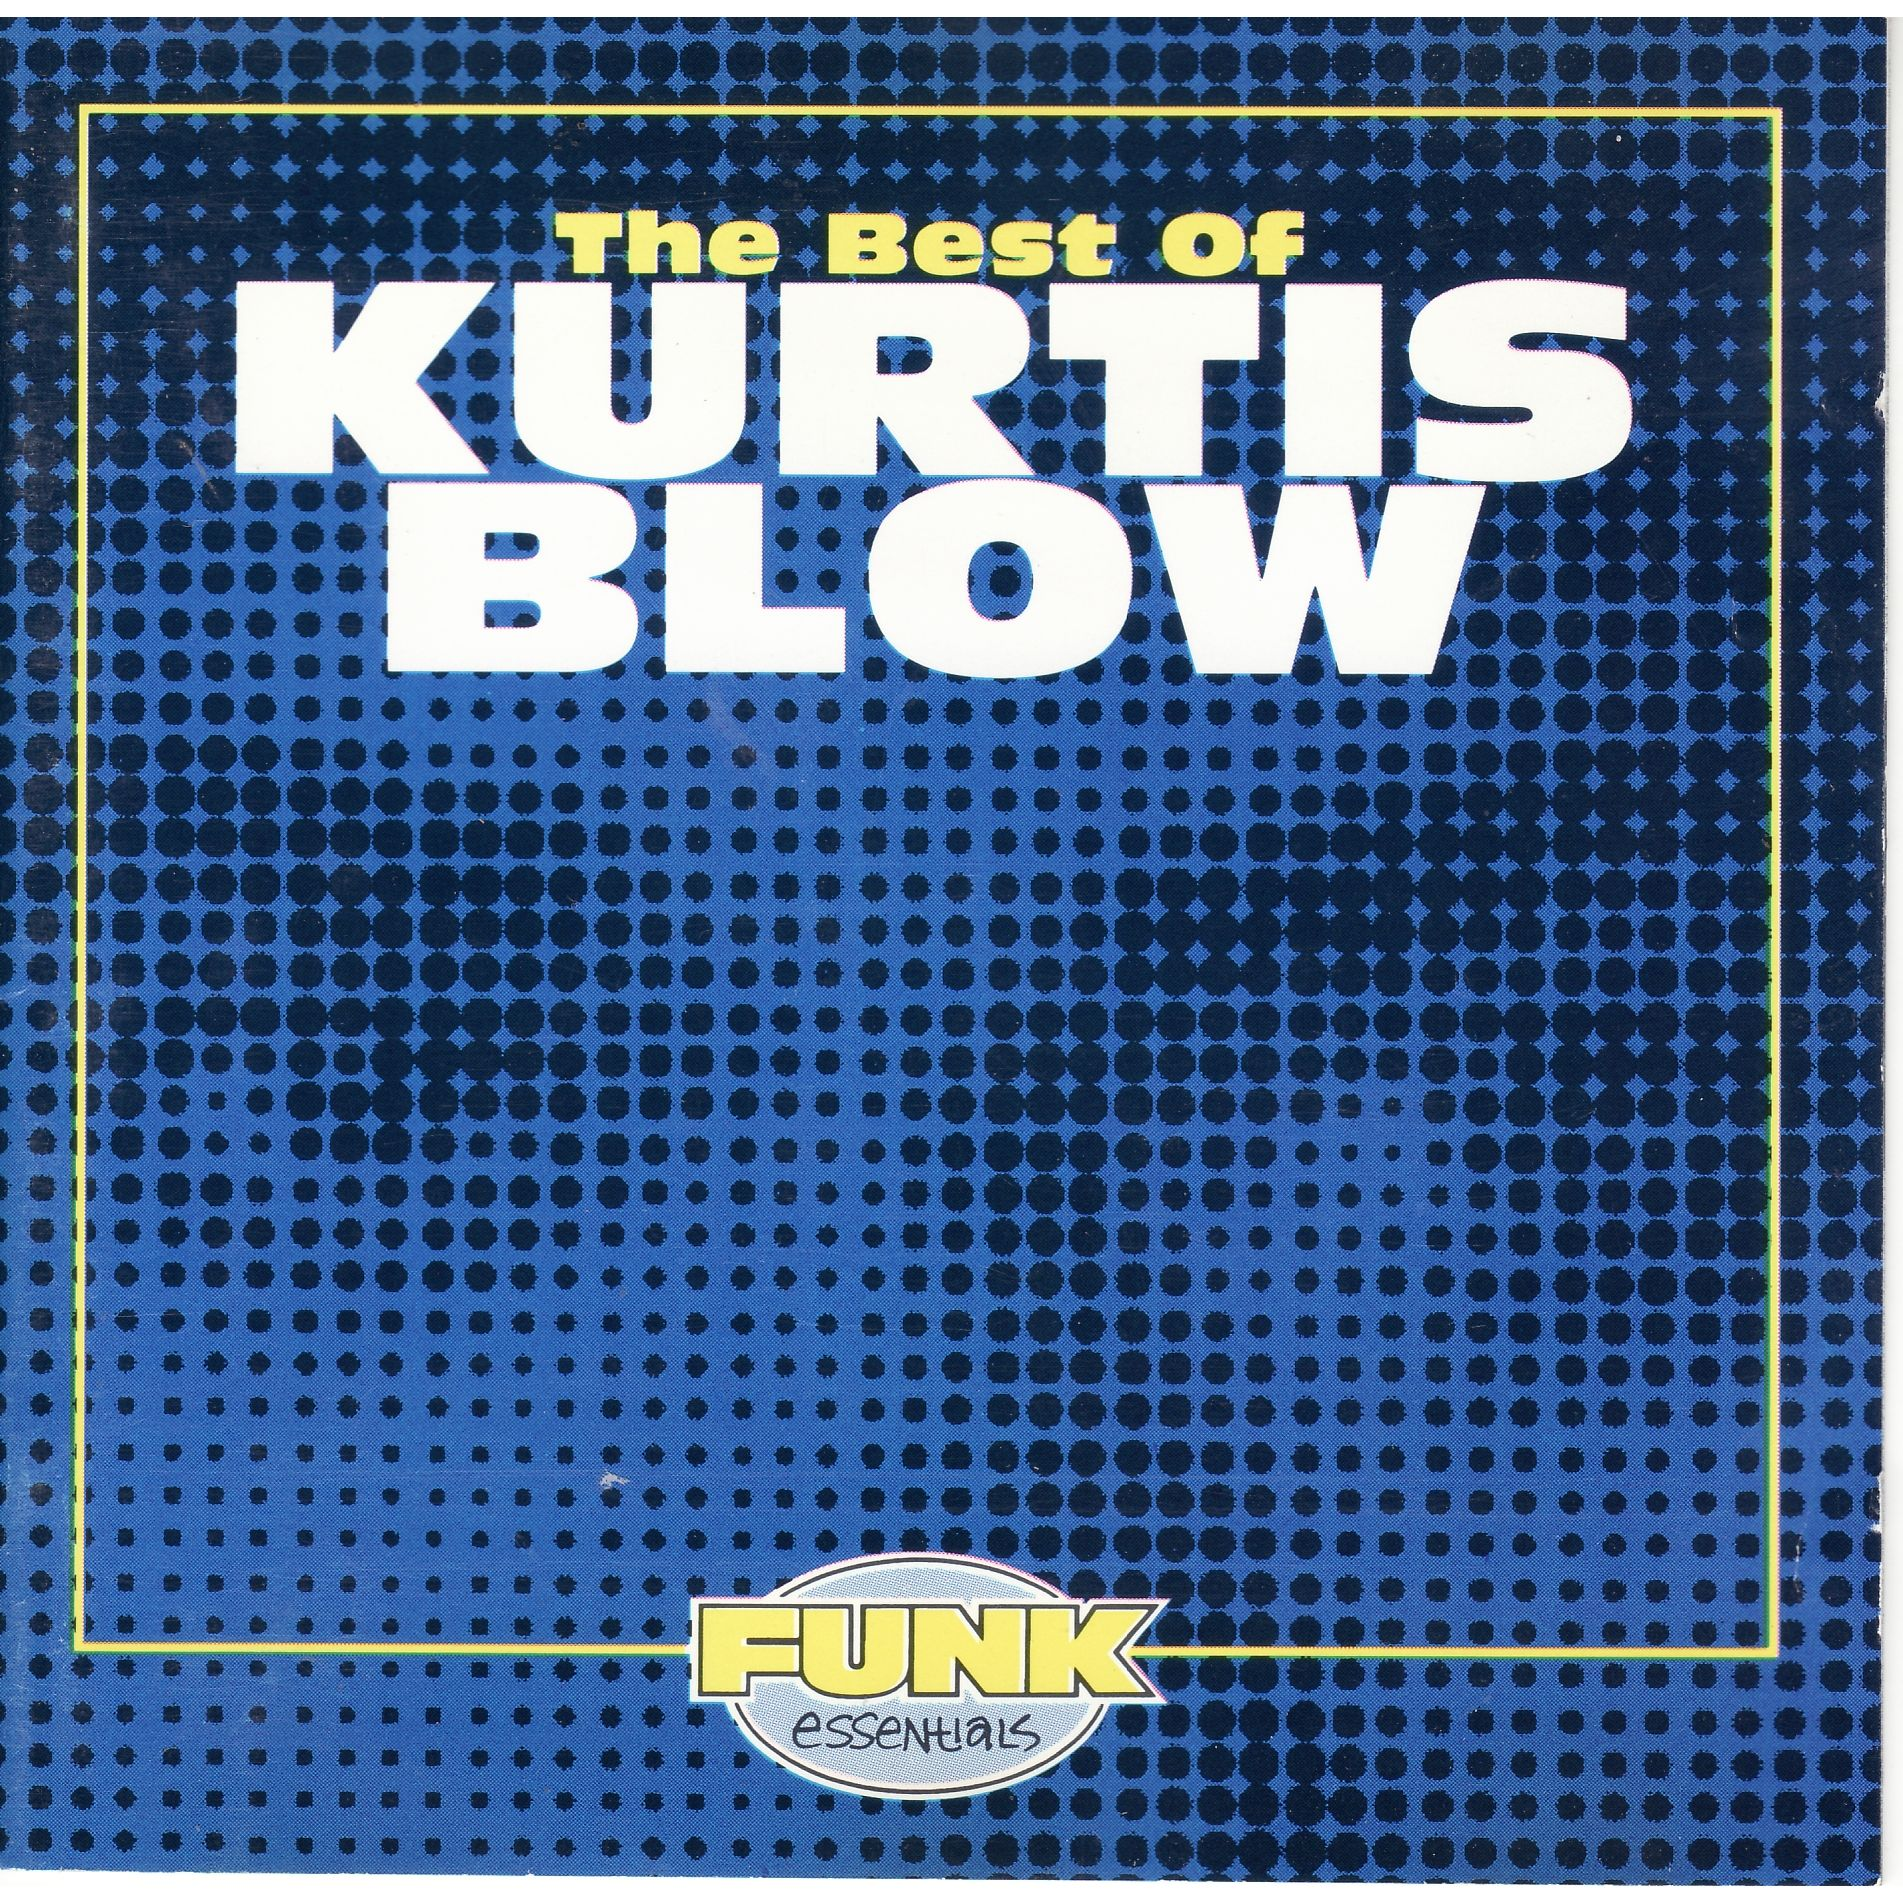 The-Best-Of-Kurtis-Blow-cover.jpg